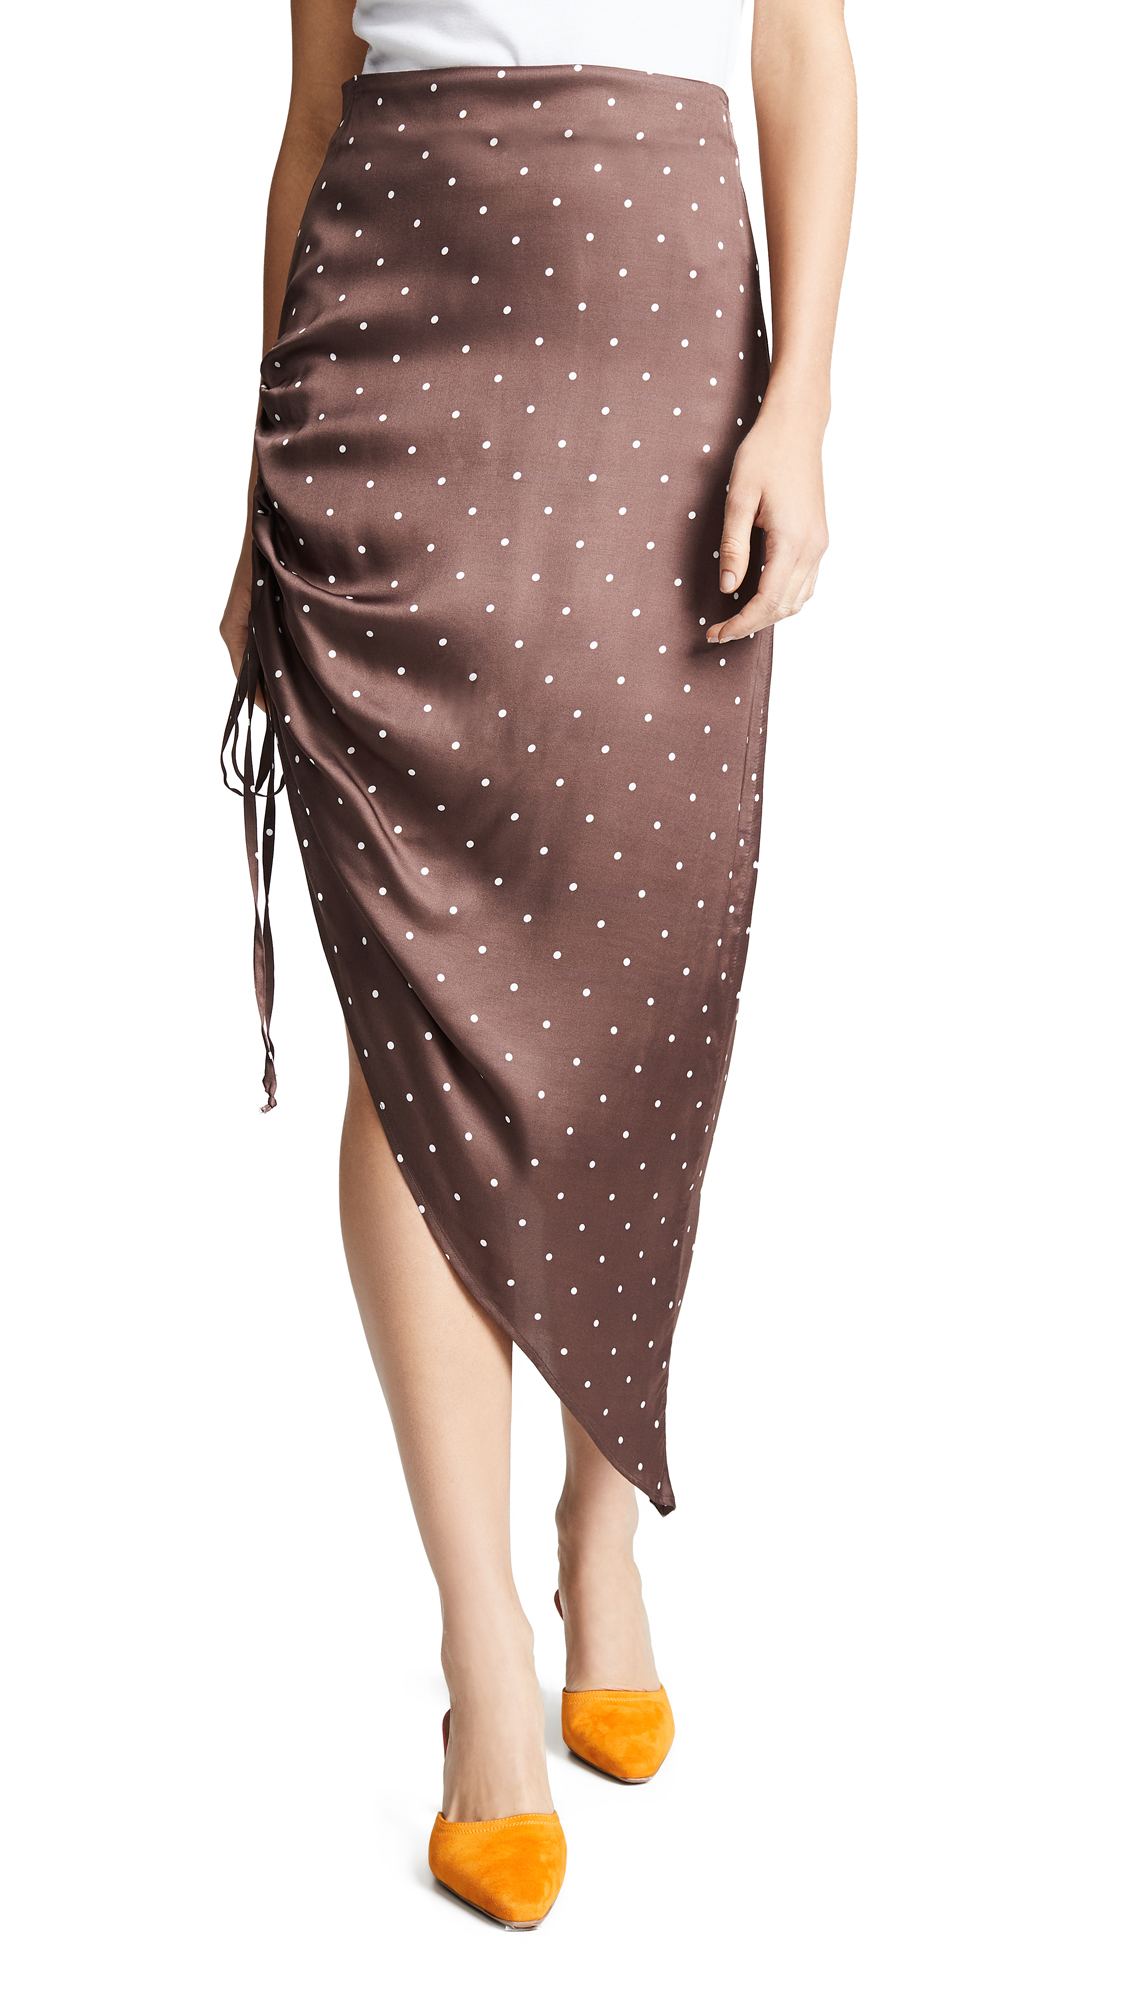 CAPULET Dakota Midi Skirt in Polka Dot